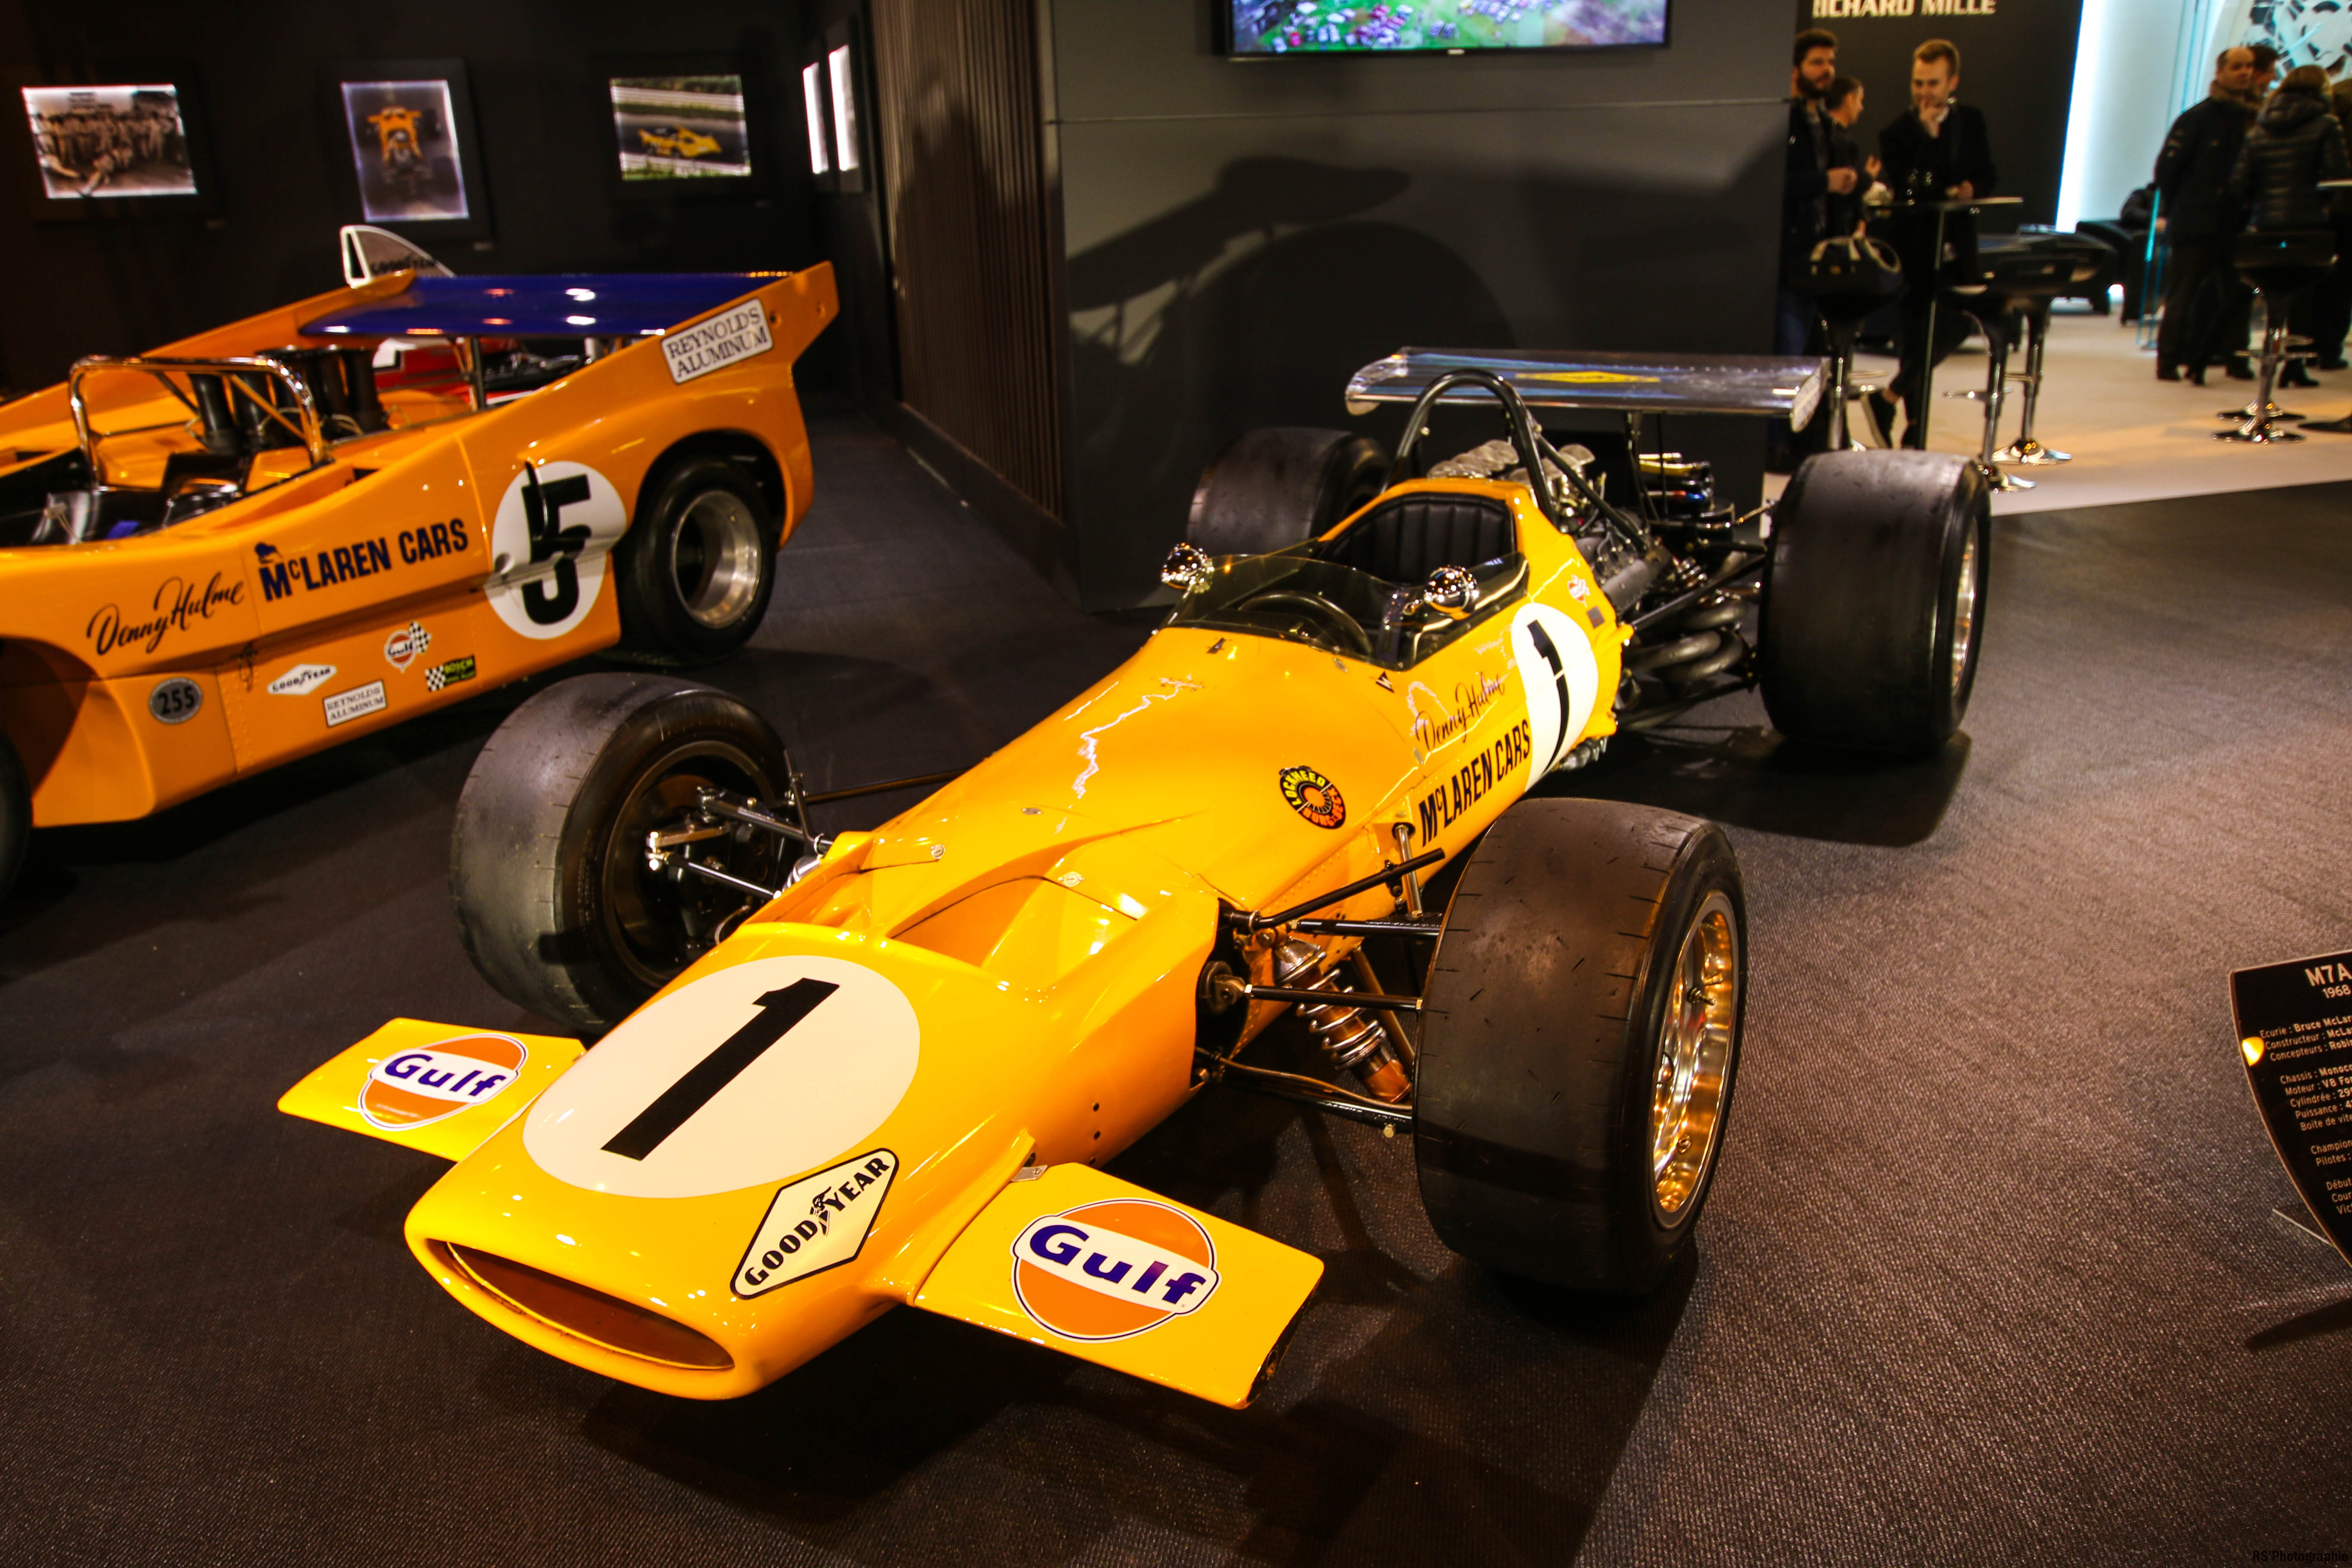 McLaren M7A - F1 1968 - stand Richard Mille - Retromobile 2018 - photo by Arnaud Demasier RS Photographie